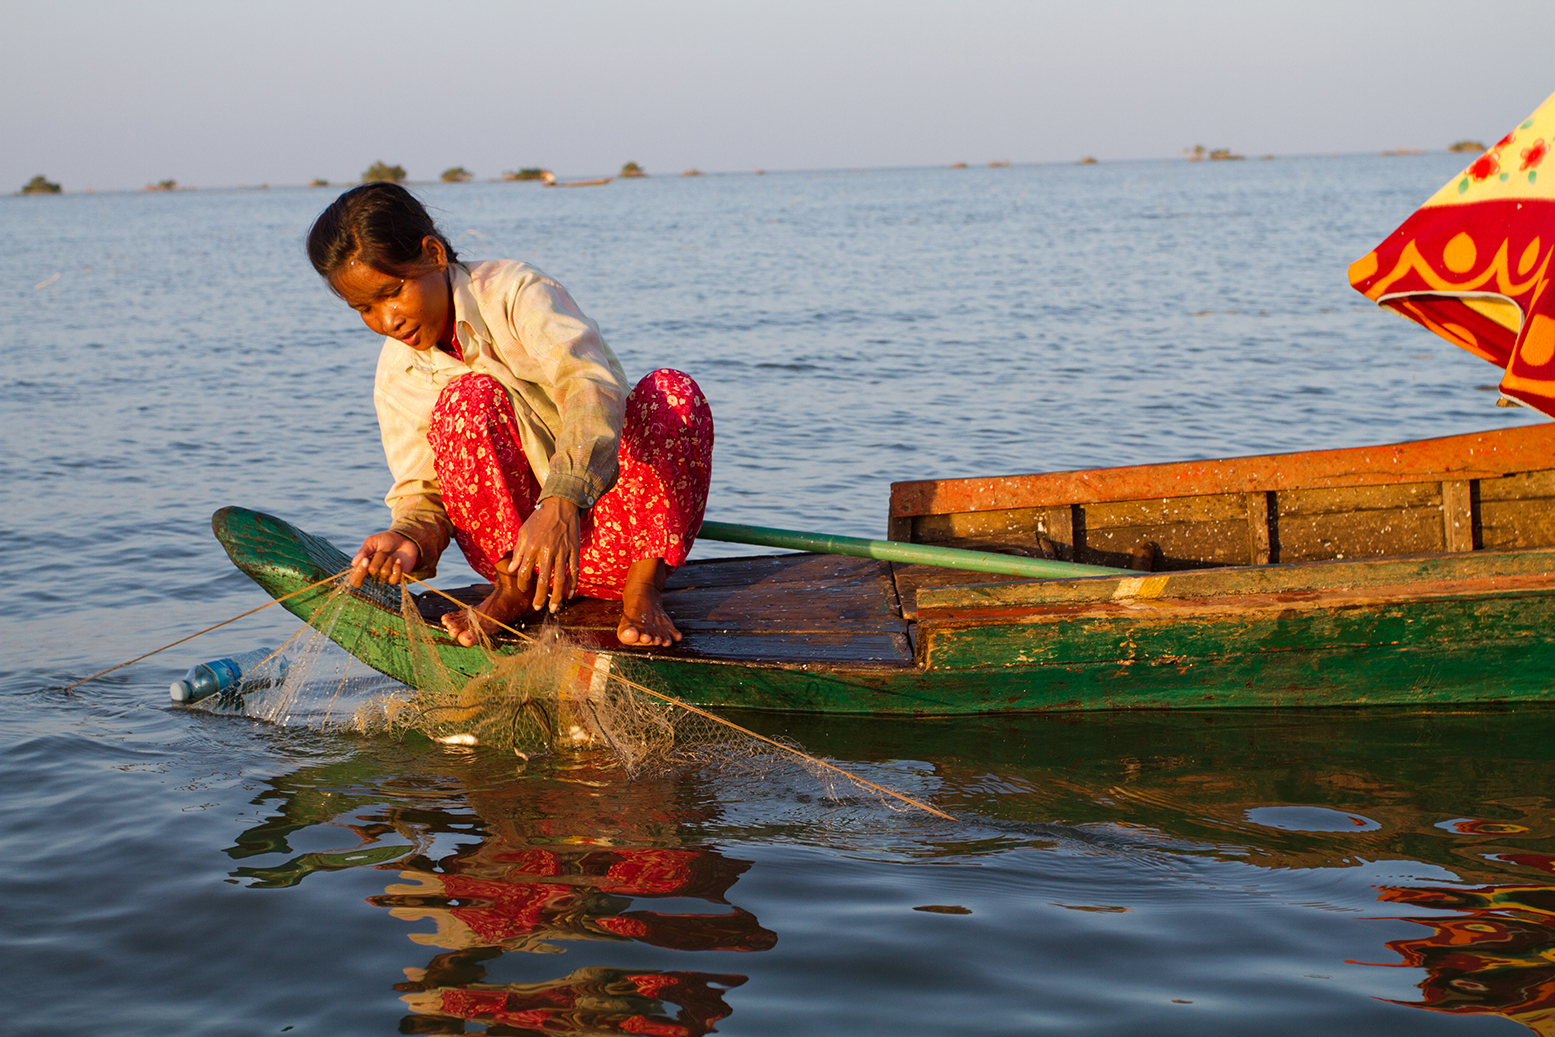 A person fishing at sunset on Tonlé Sap Lake, near Akal village in Cambodia.